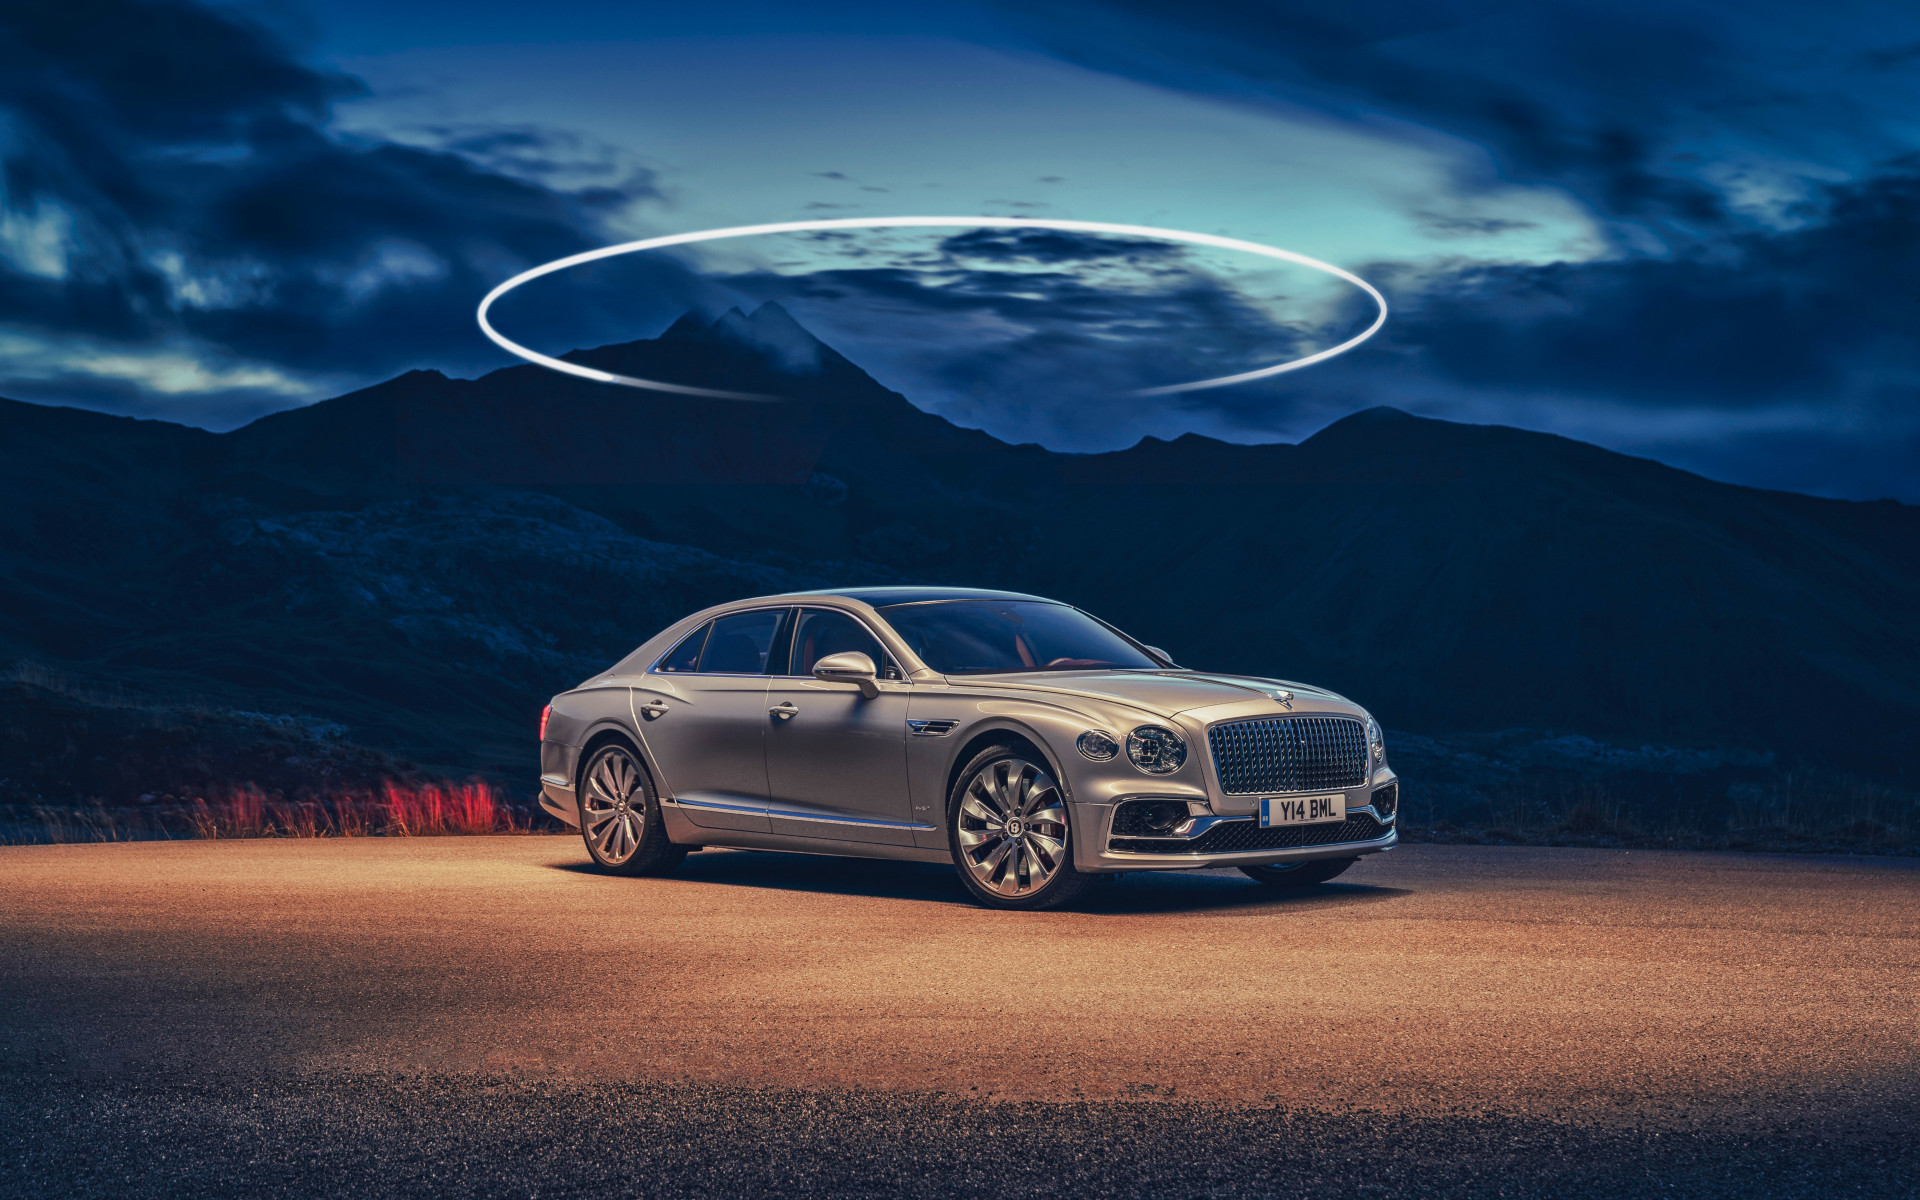 Bentley Flying Spur wallpaper 1920x1200